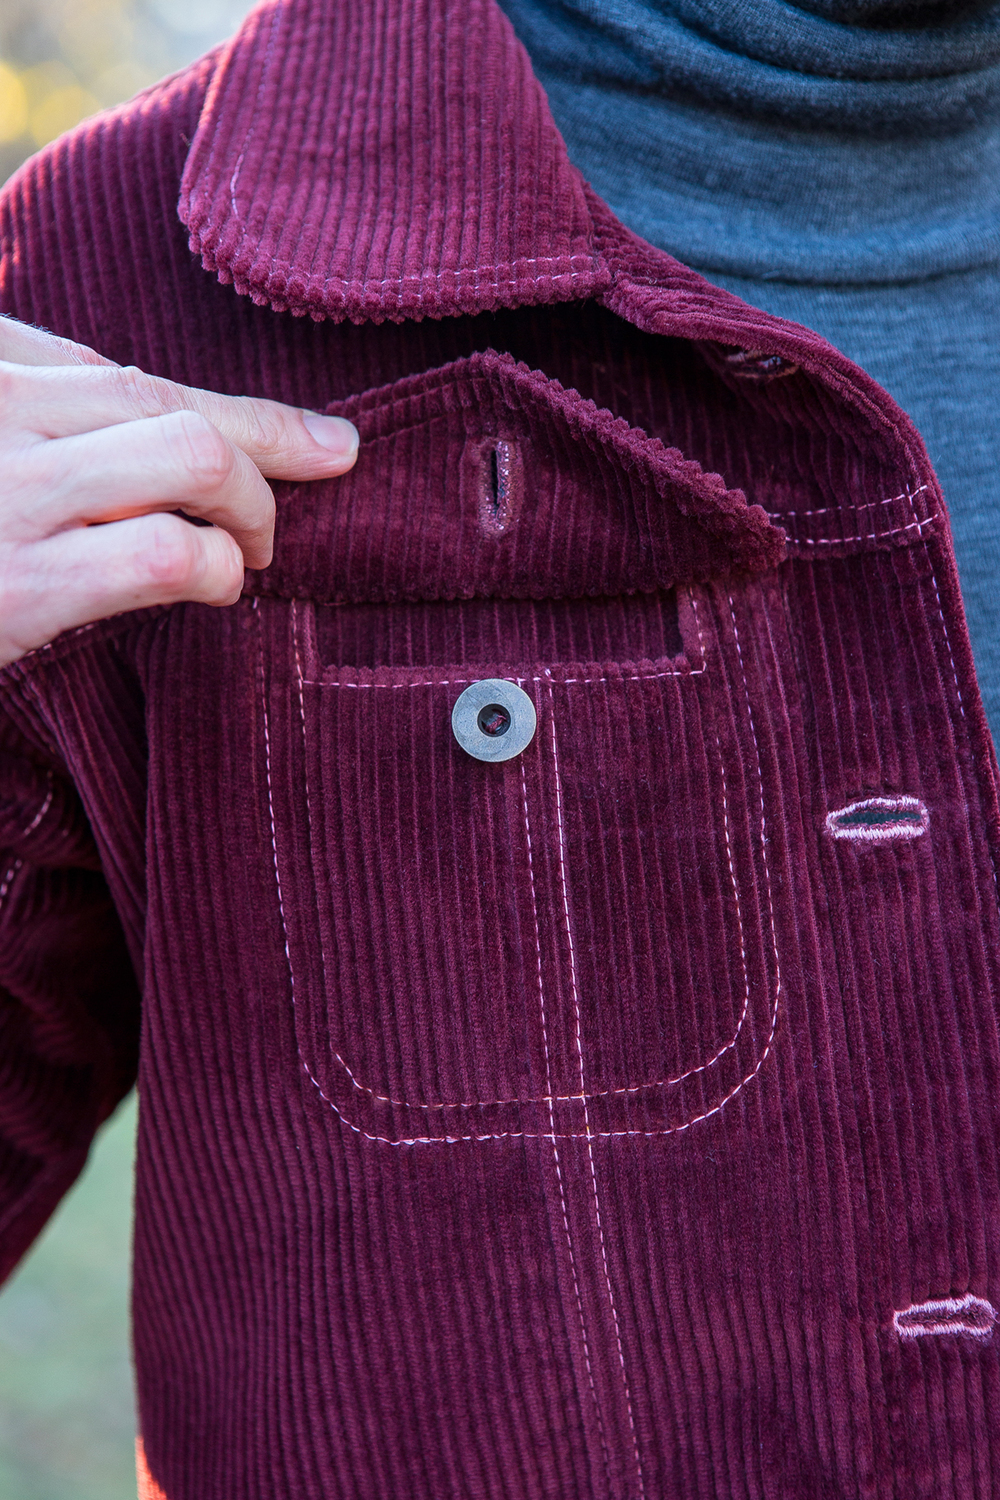 Upper pocket flaps inserted into upper front yoke.